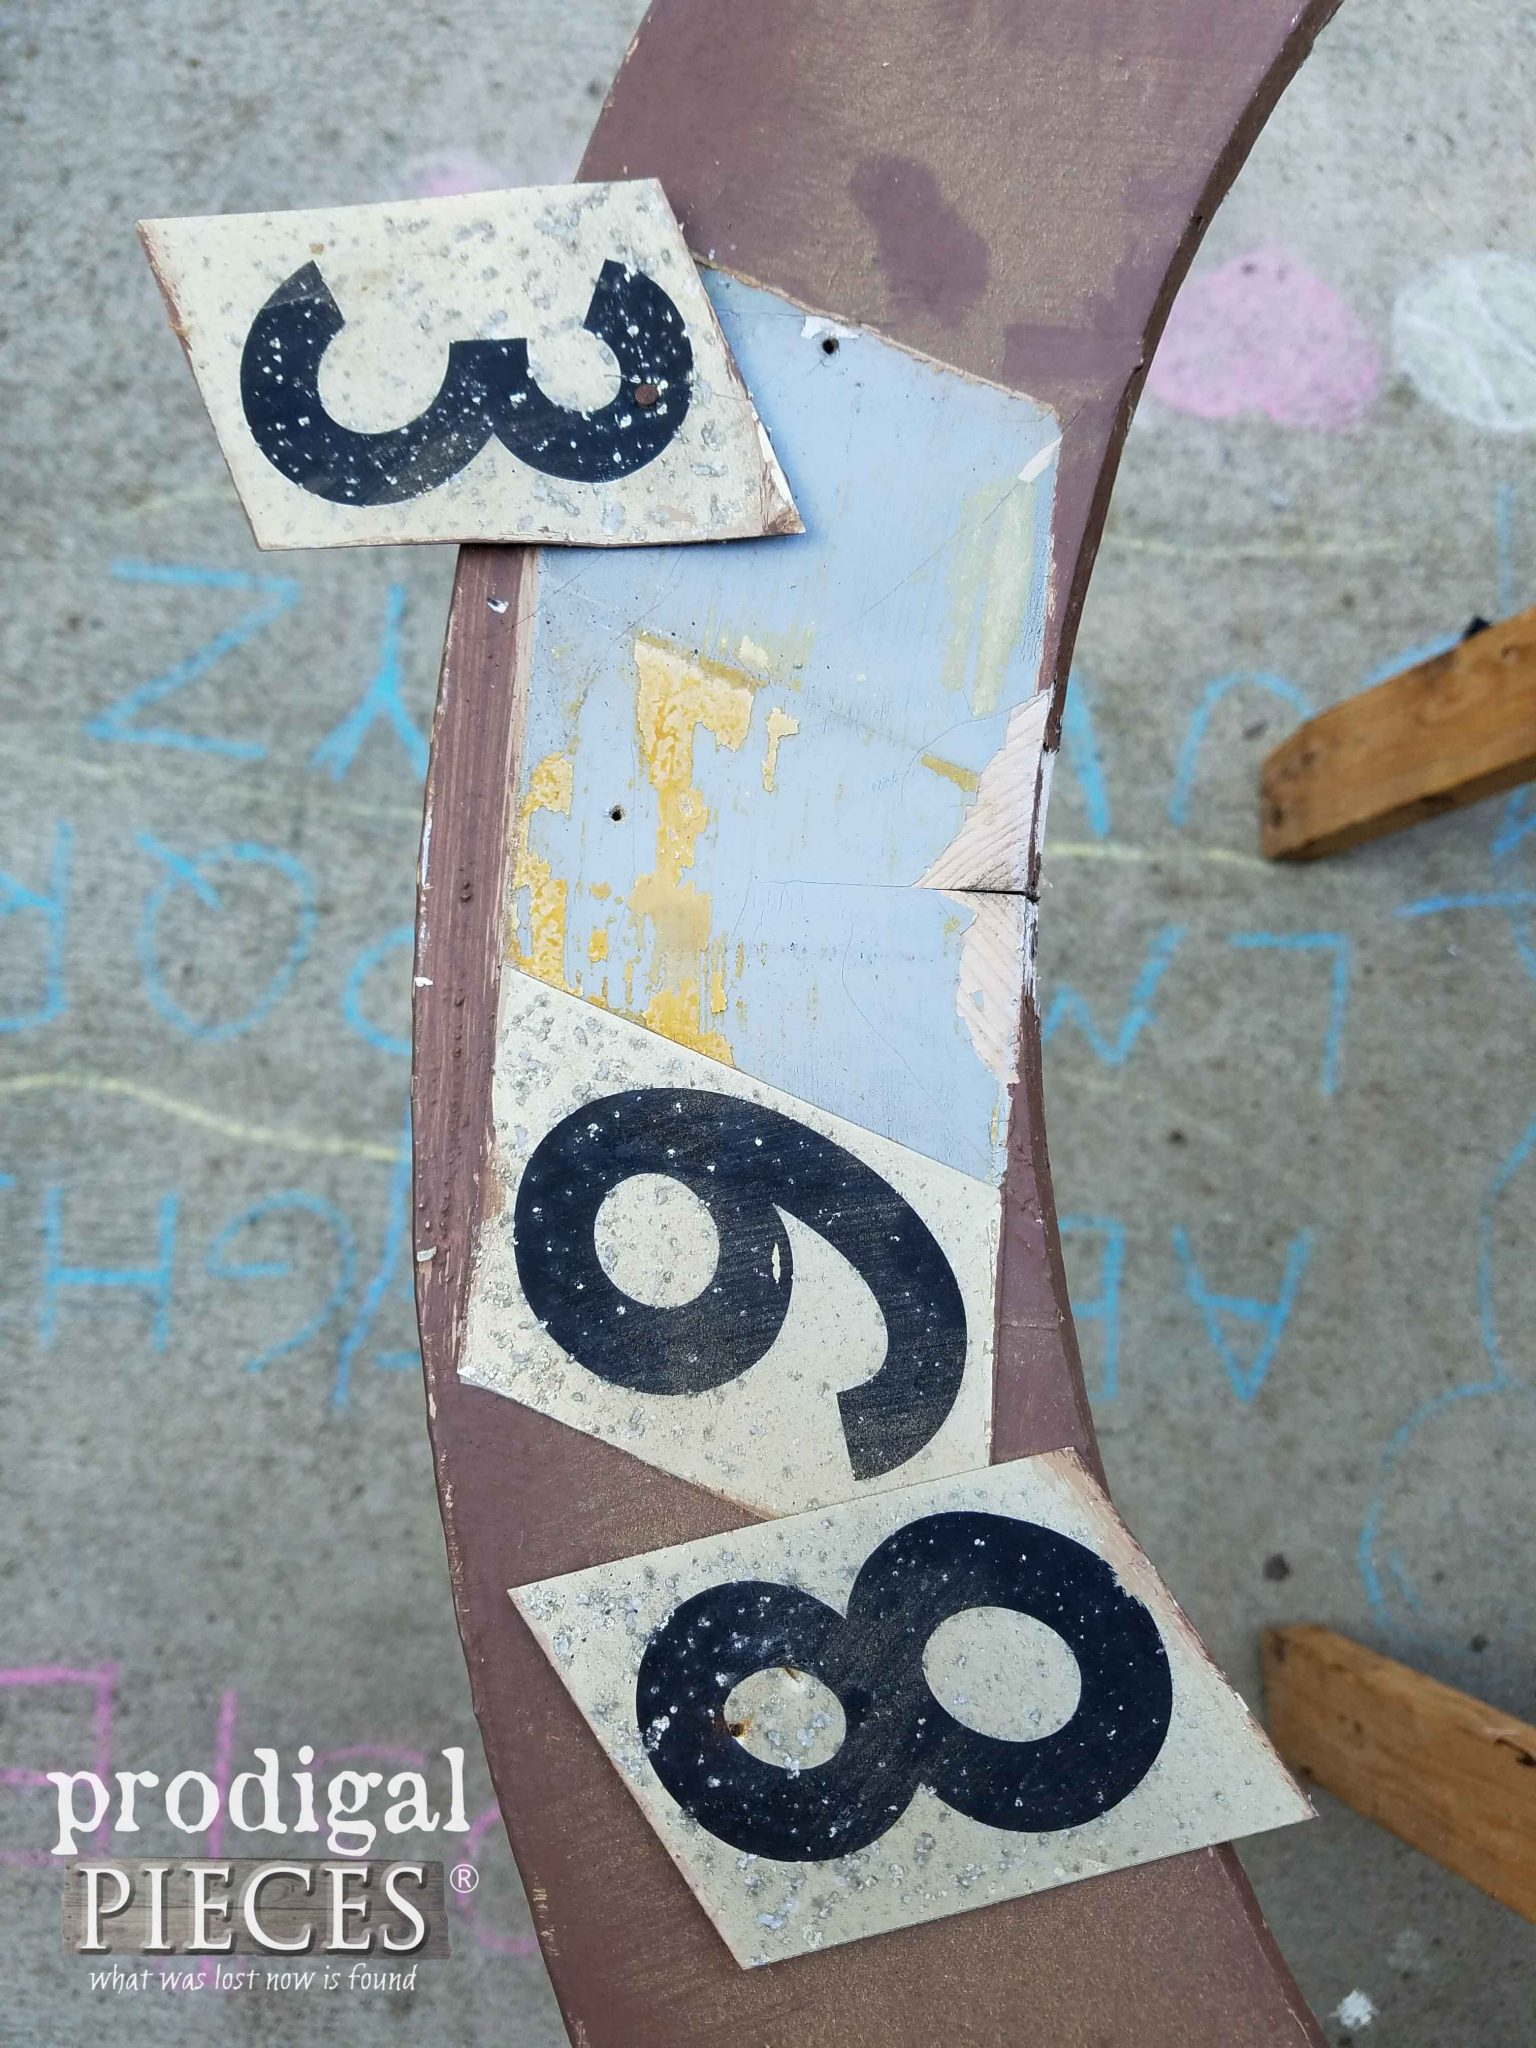 Removing Old Door House Numbers to Prep | prodigalpieces.com